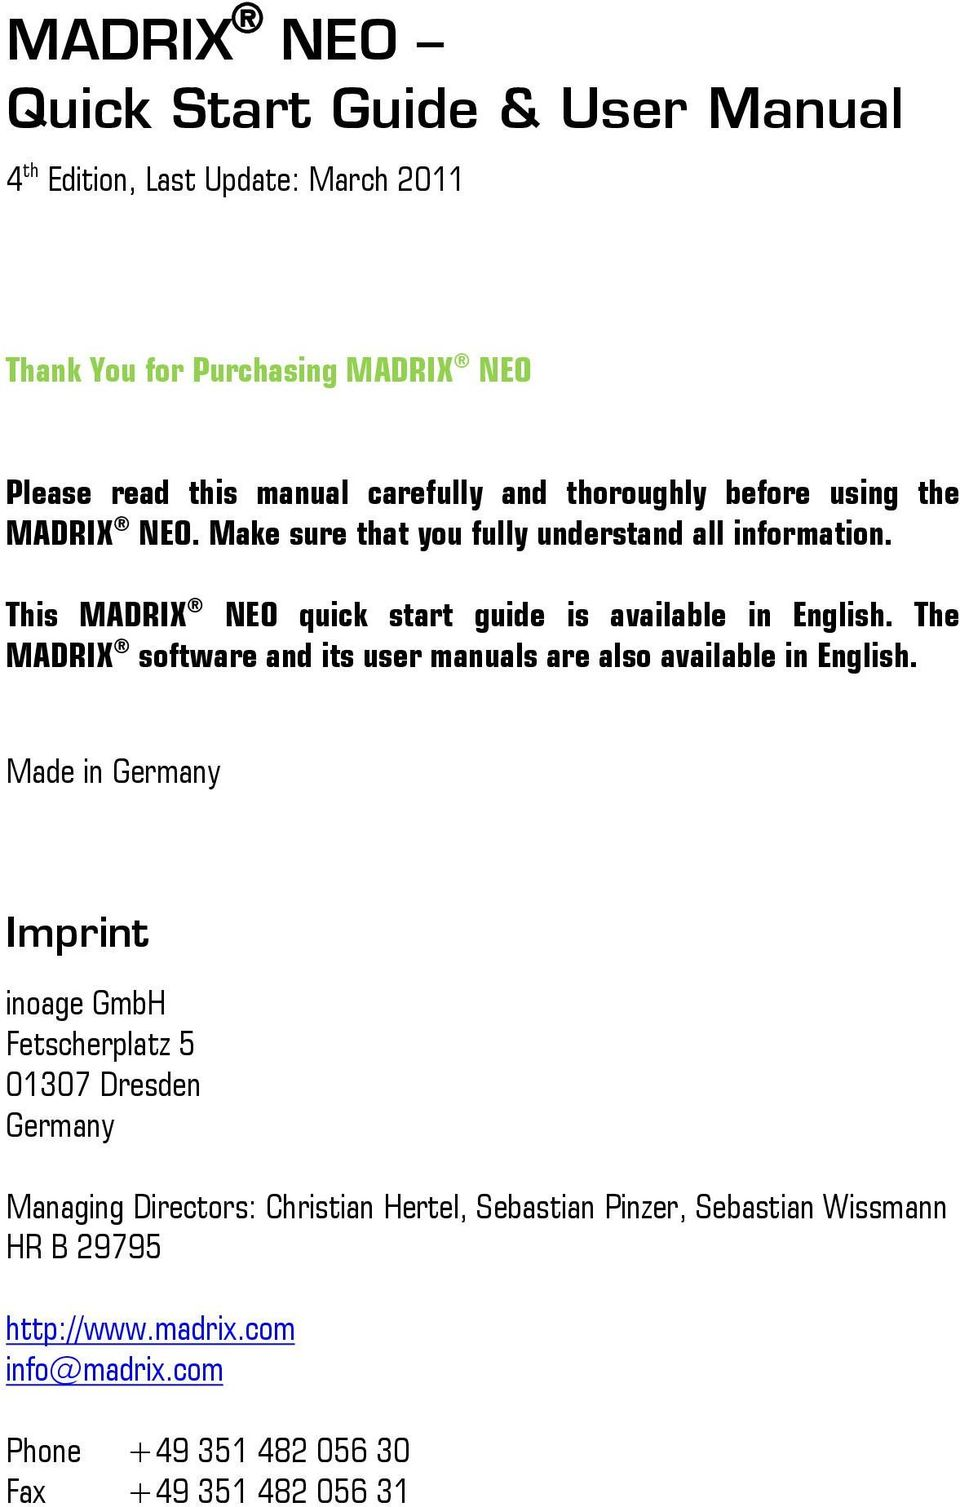 The MADRIX software and its user manuals are also available in English.